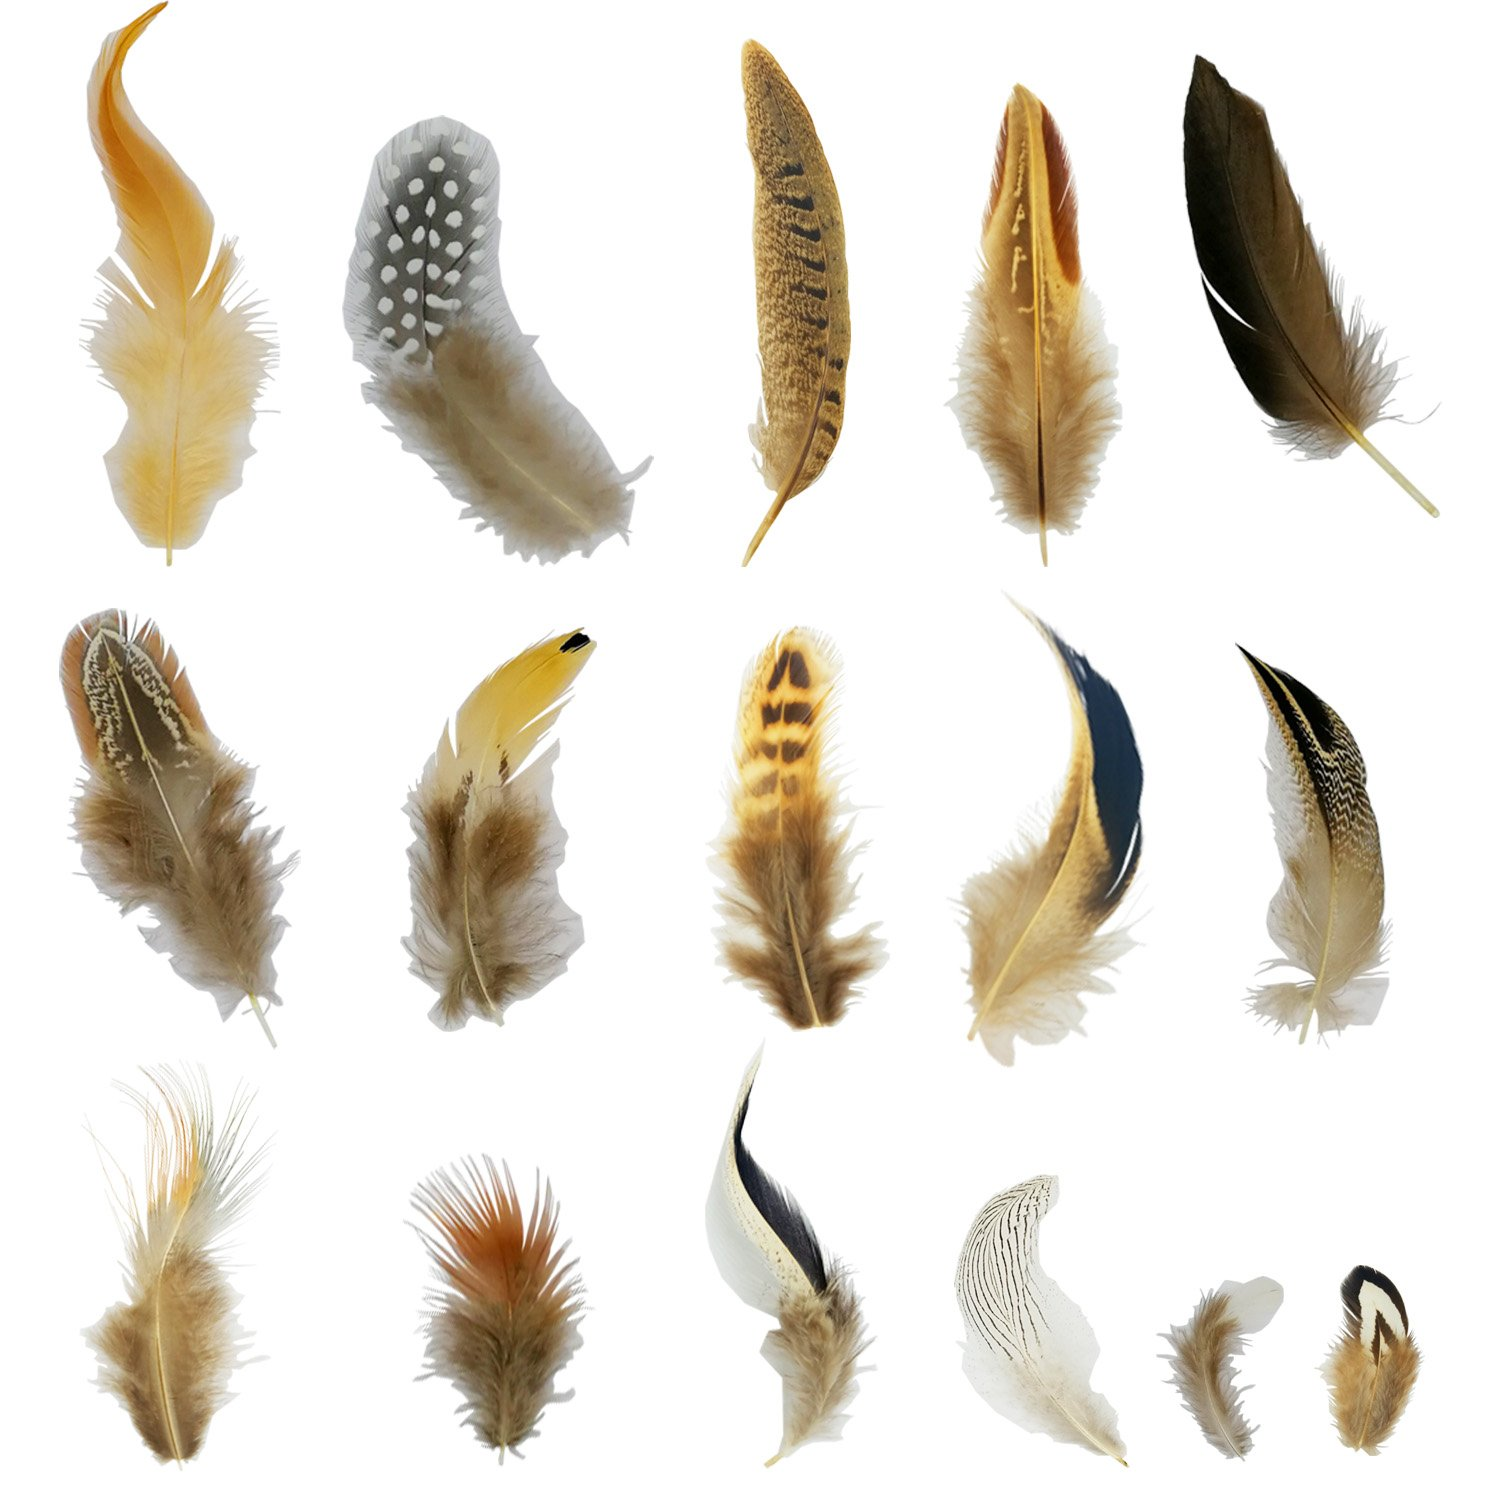 16 kinds of Art feathers Assorted for DIY Dream Catcher Craft (45pcs -50pcs)